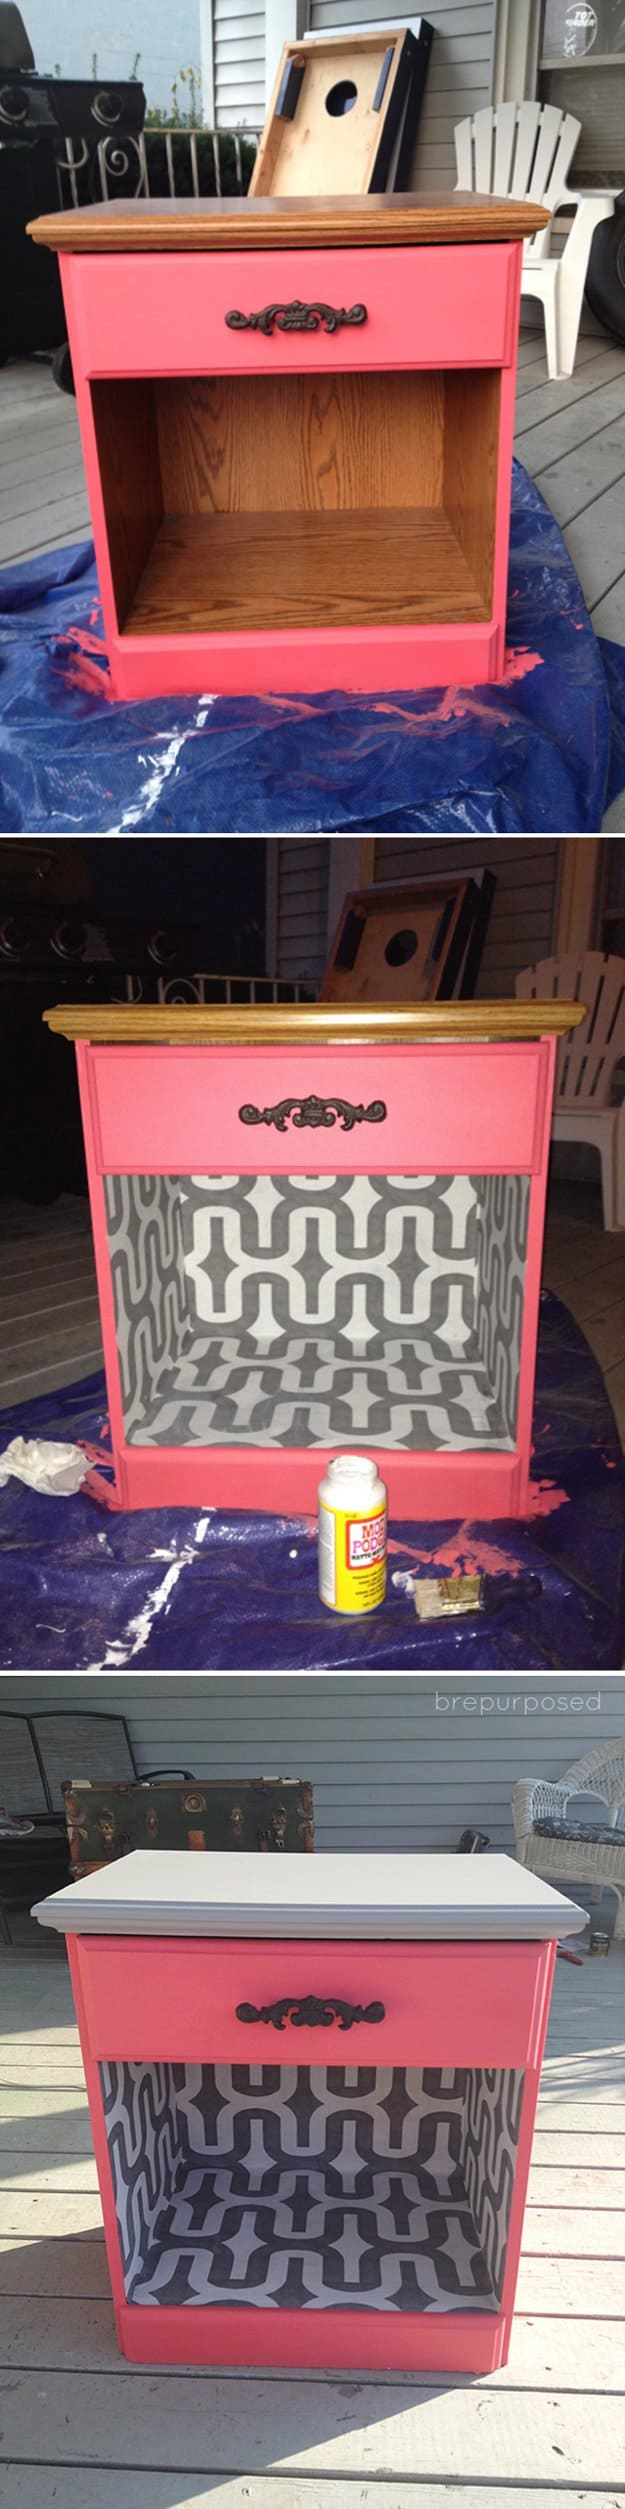 27. CORAL NIGHTSTAND NESTLING INTRICATE TEXTURES